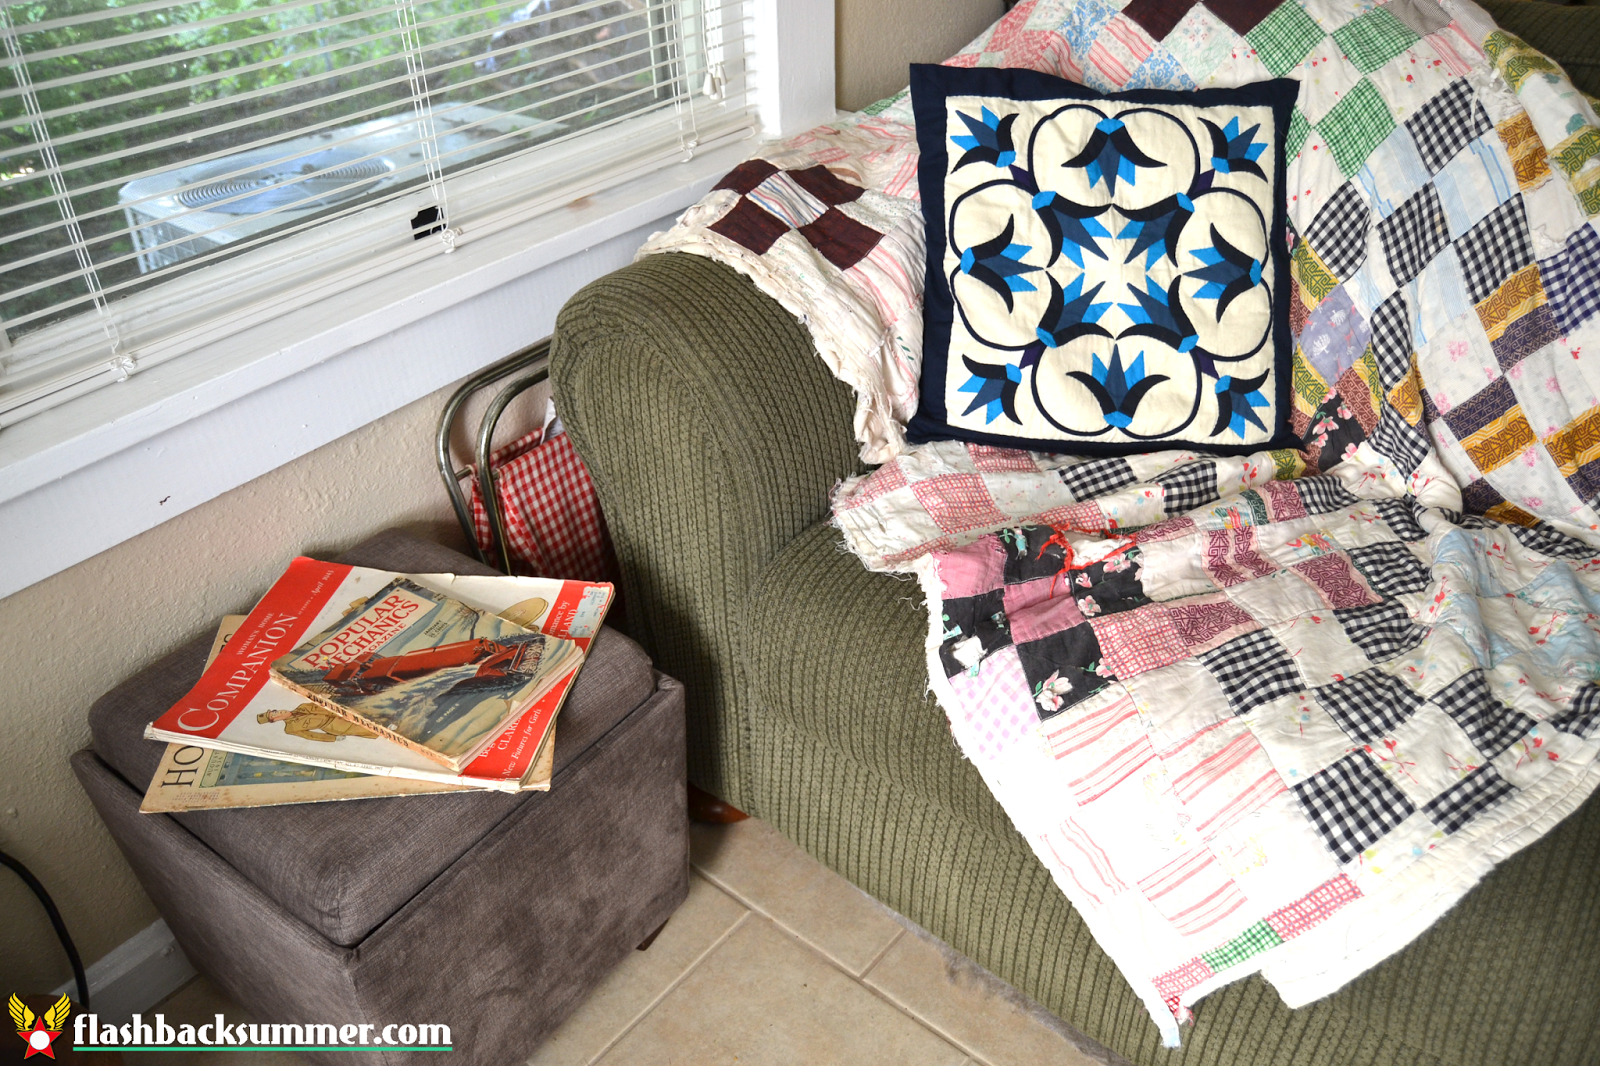 Flashback Summer: My Not-a-Magazine-Shoot Living Room